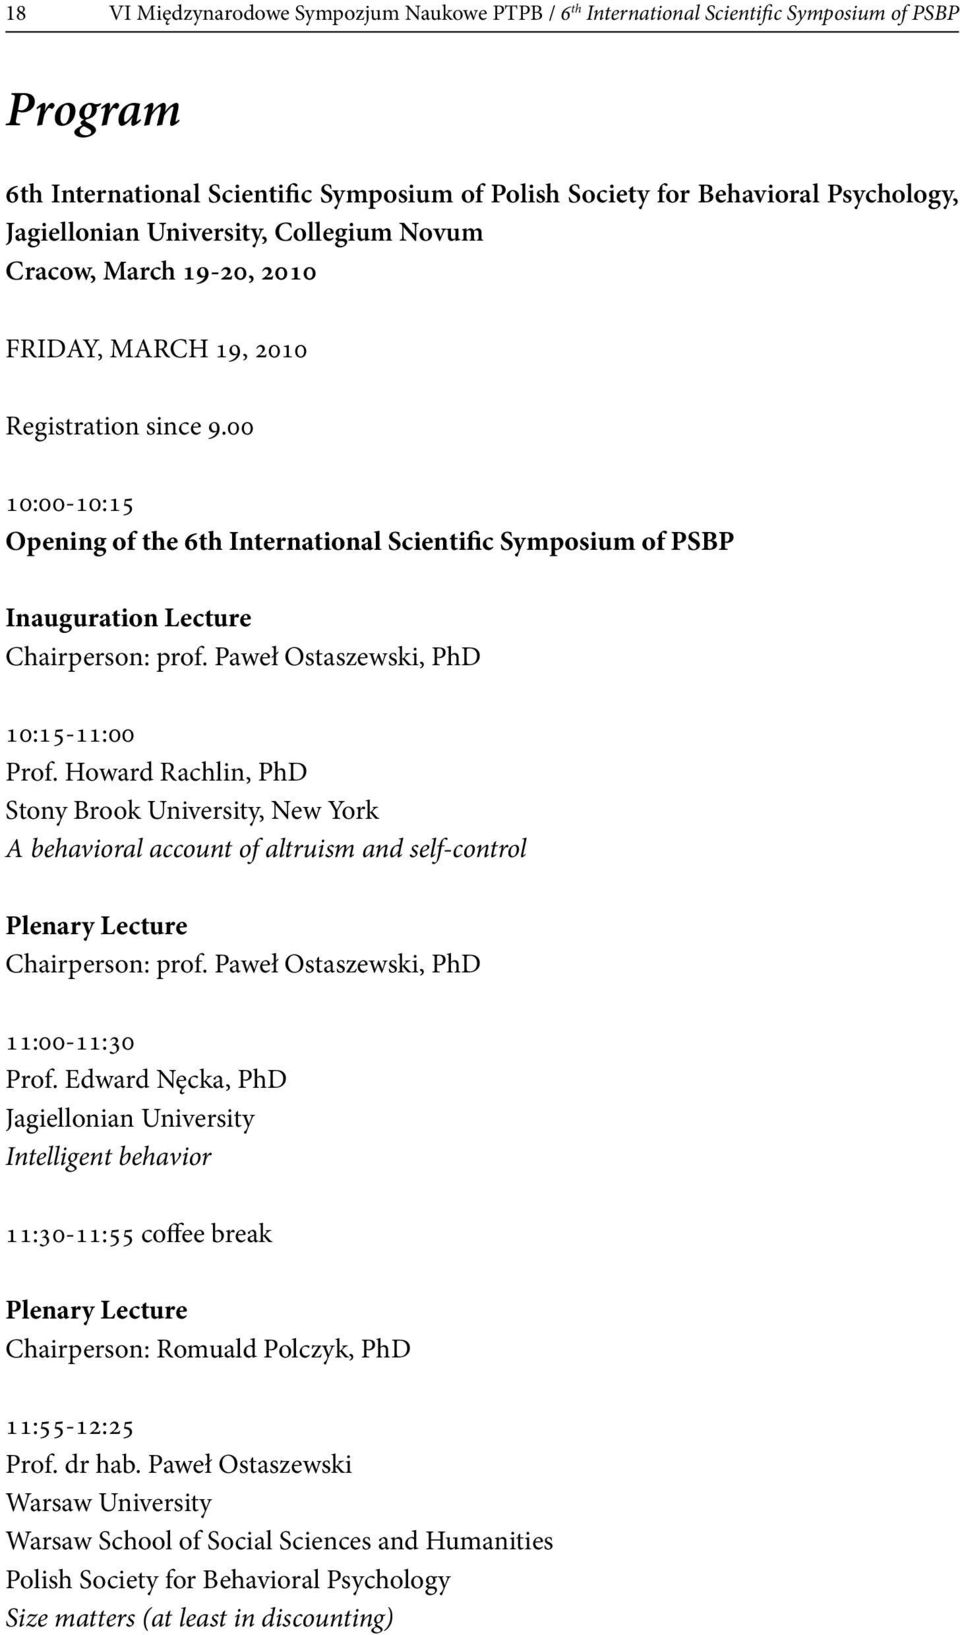 00 10:00-10:15 Opening of the 6th International Scientific Symposium of PSBP Inauguration Lecture Chairperson: prof. Paweł Ostaszewski, PhD 10:15-11:00 Prof.